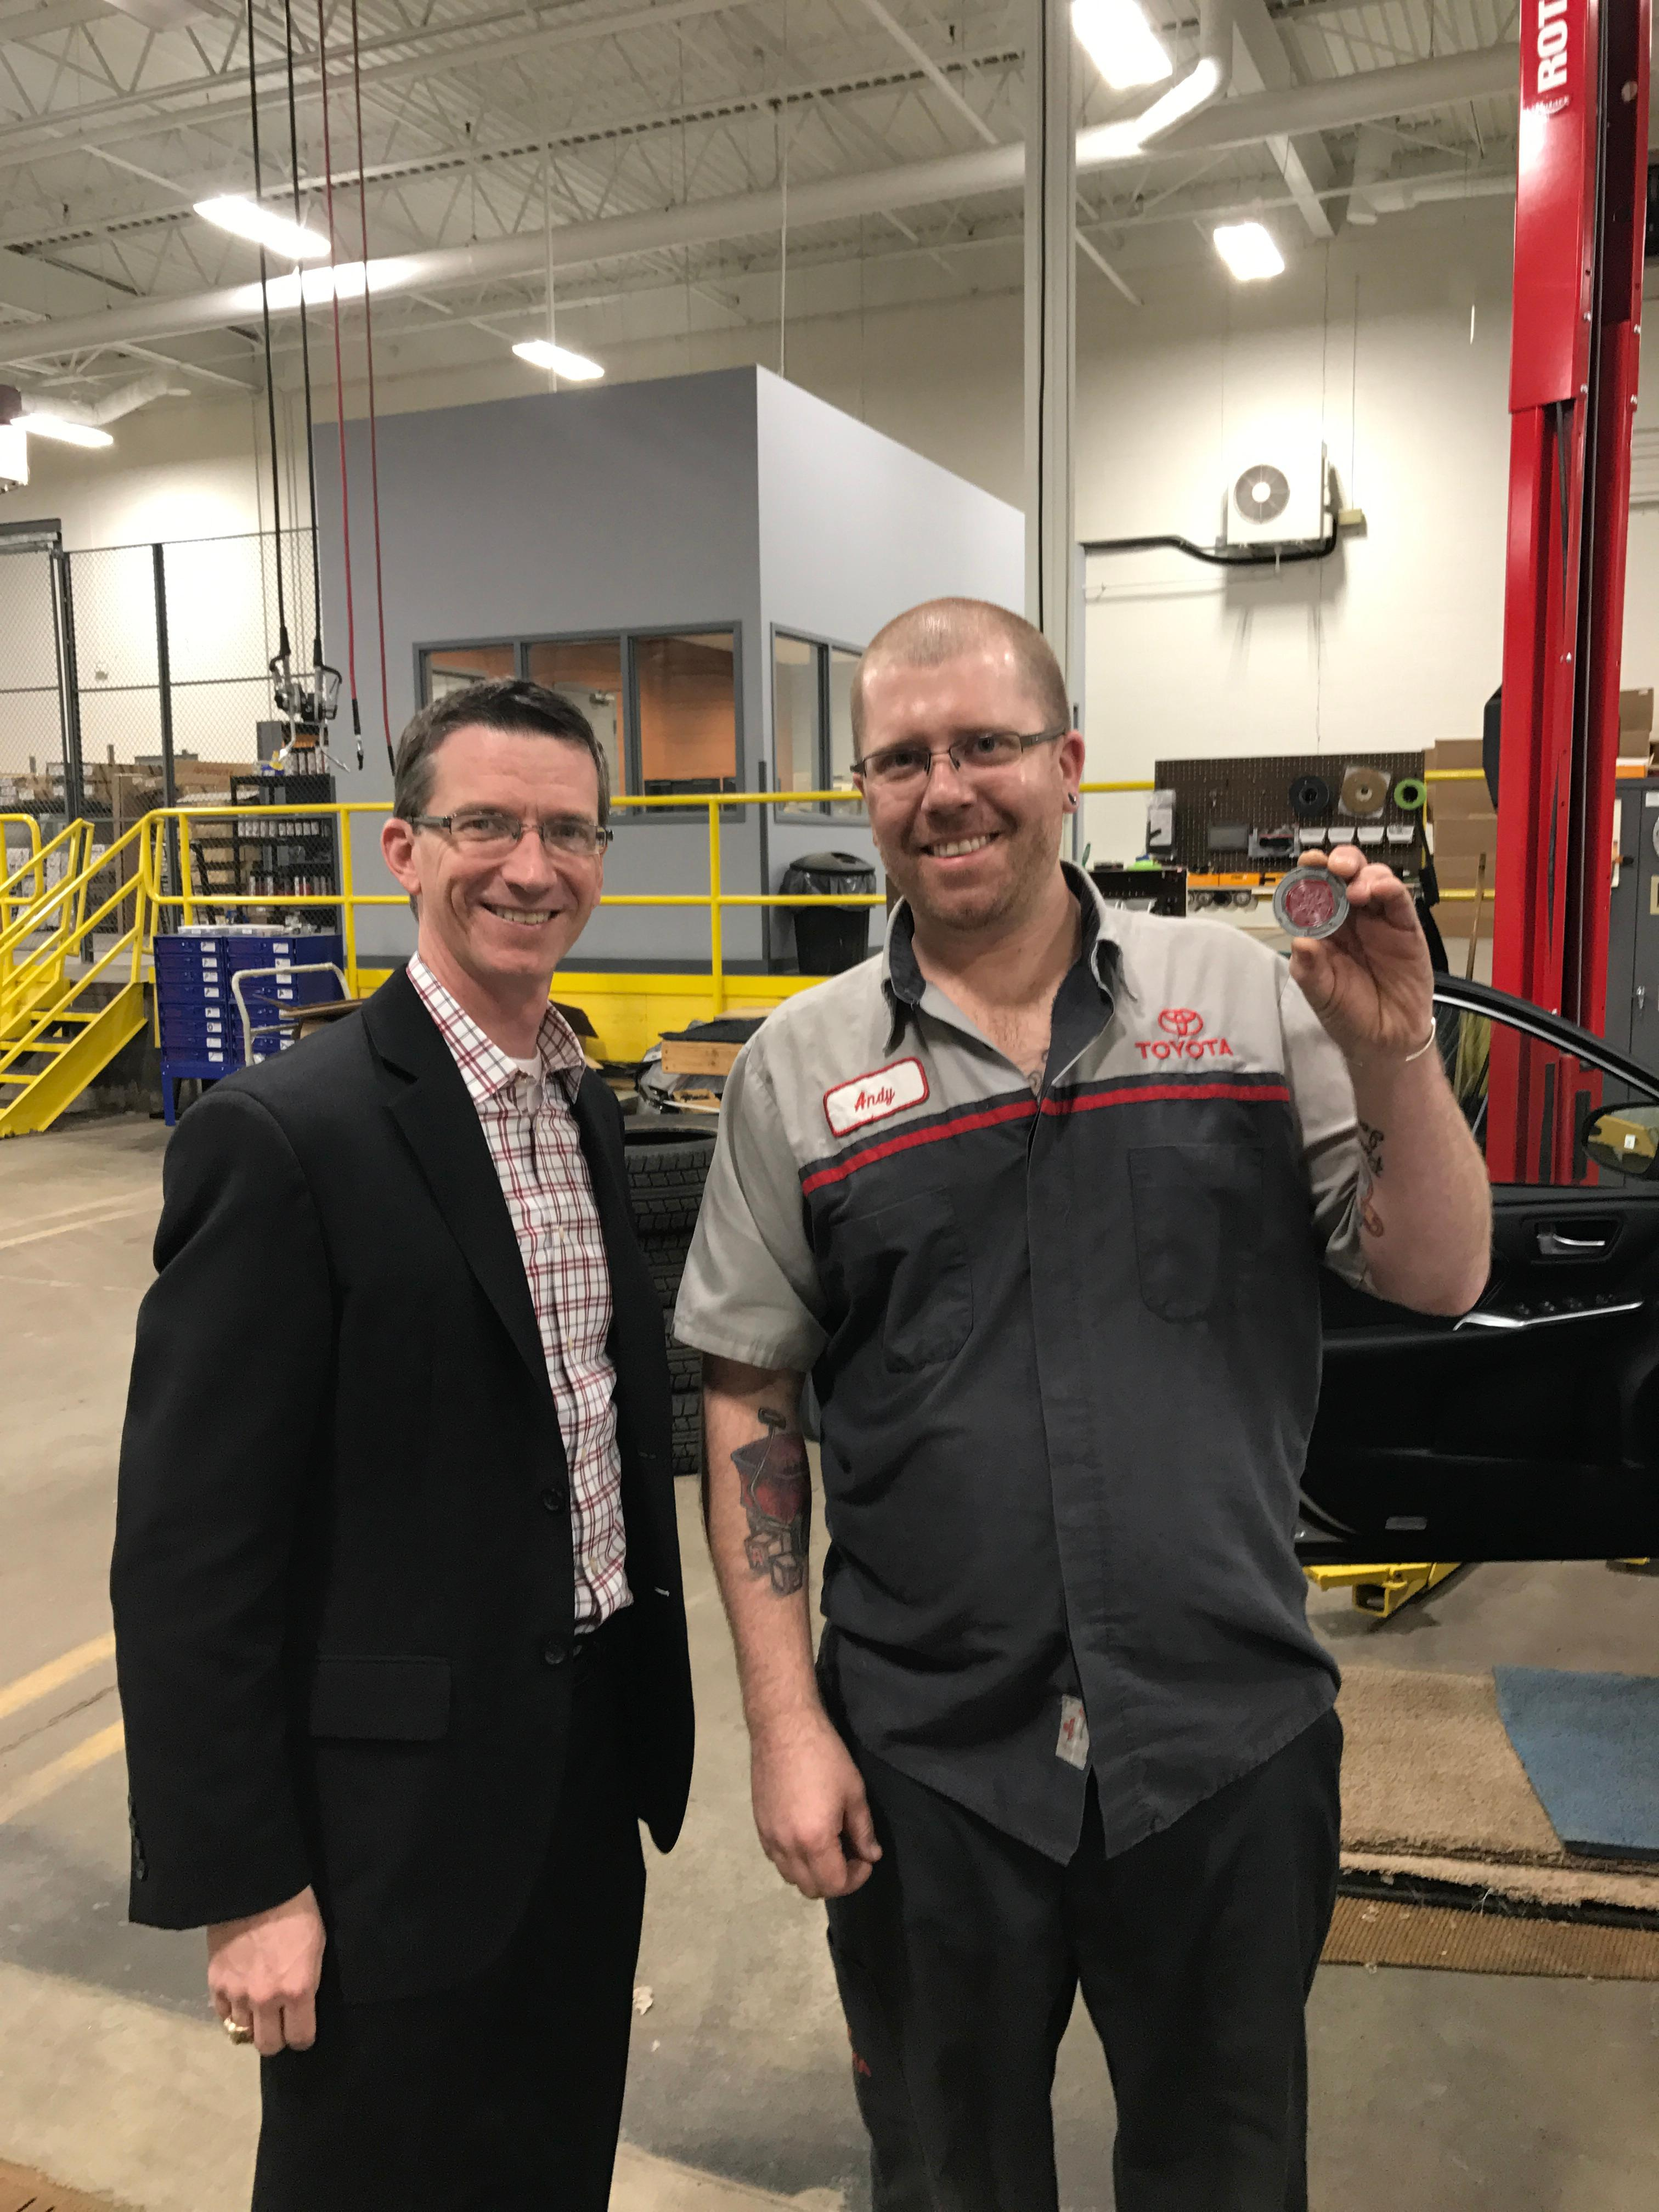 Andrew was presented an Insignia Challenge Coin for 2016 for Rudy Luther Toyota